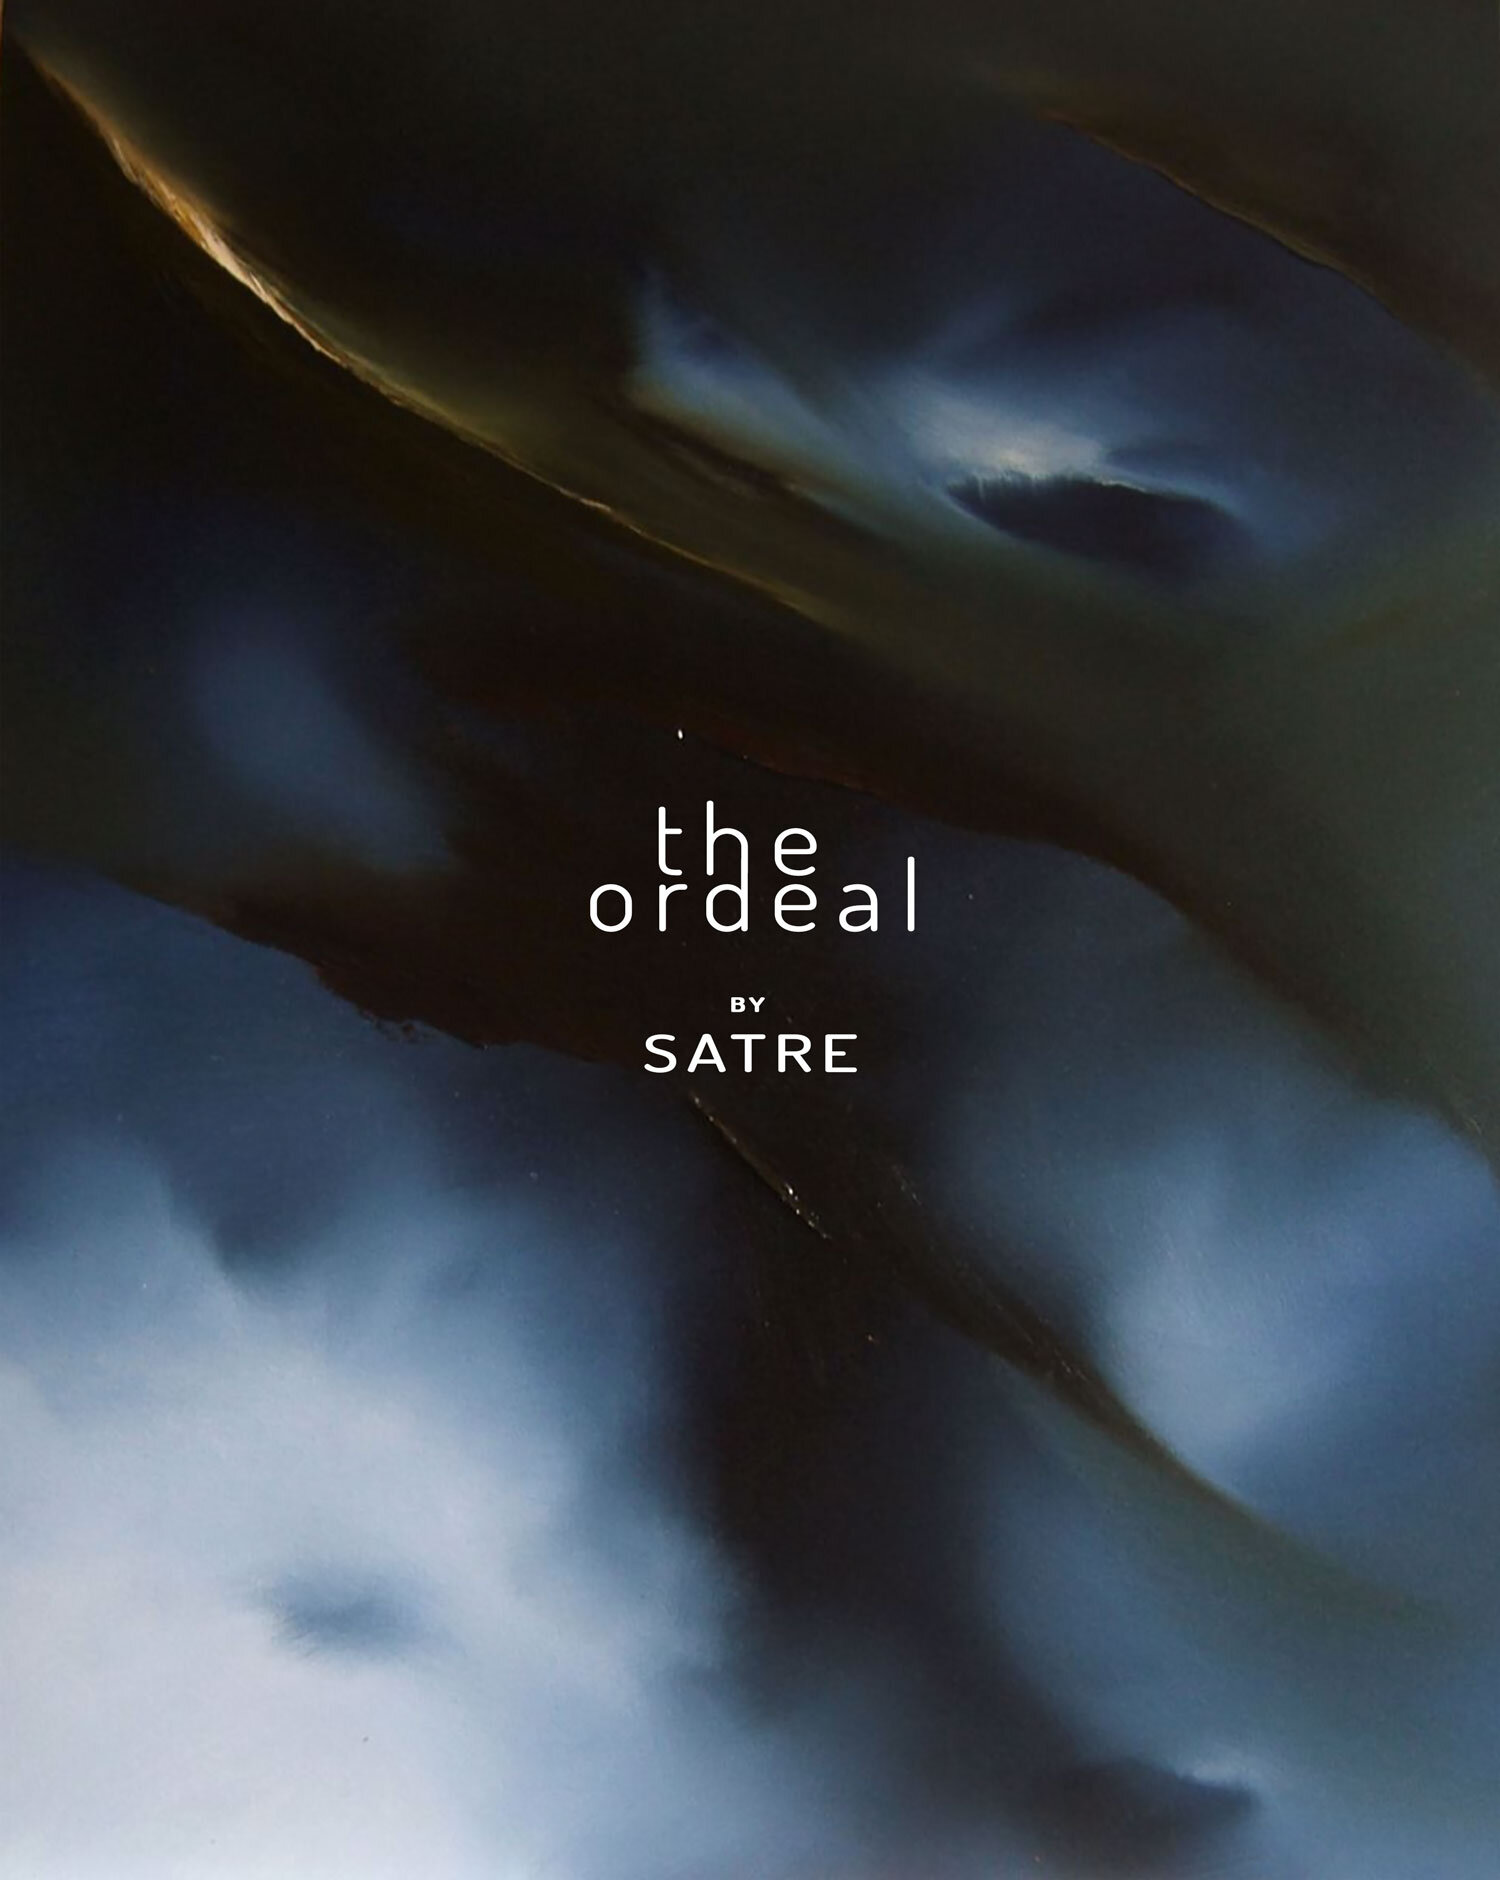 The-Ordeal-Front-1500-geir-satre.jpg